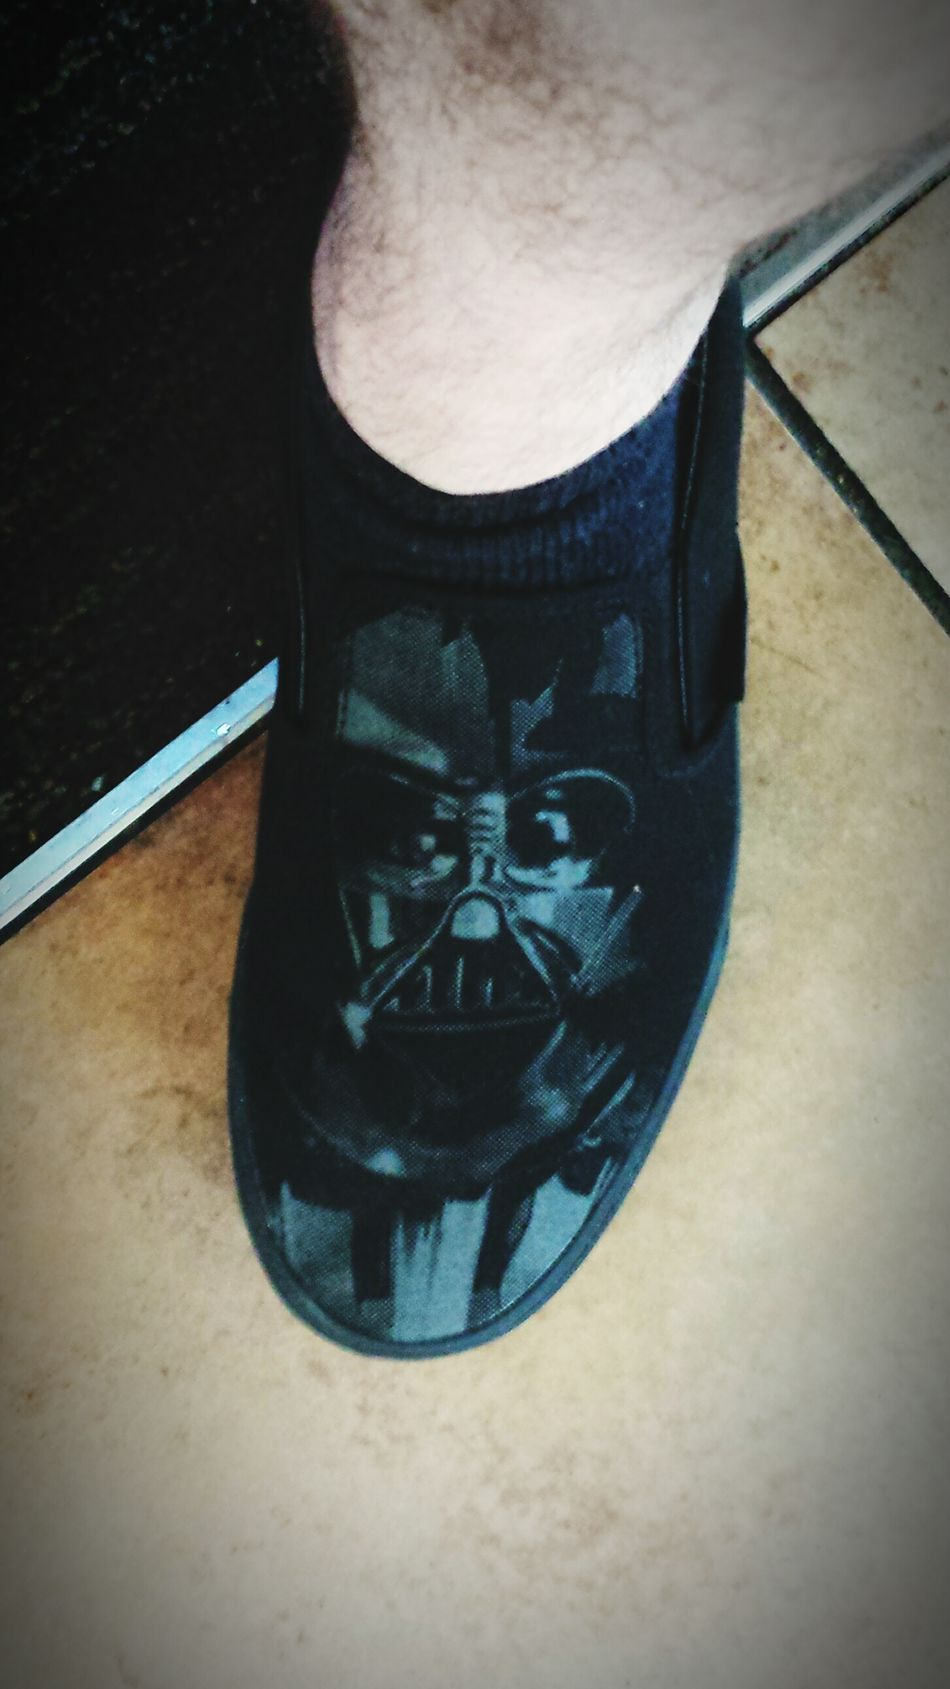 I really want Darth Vader's theme music to play when I walk now.